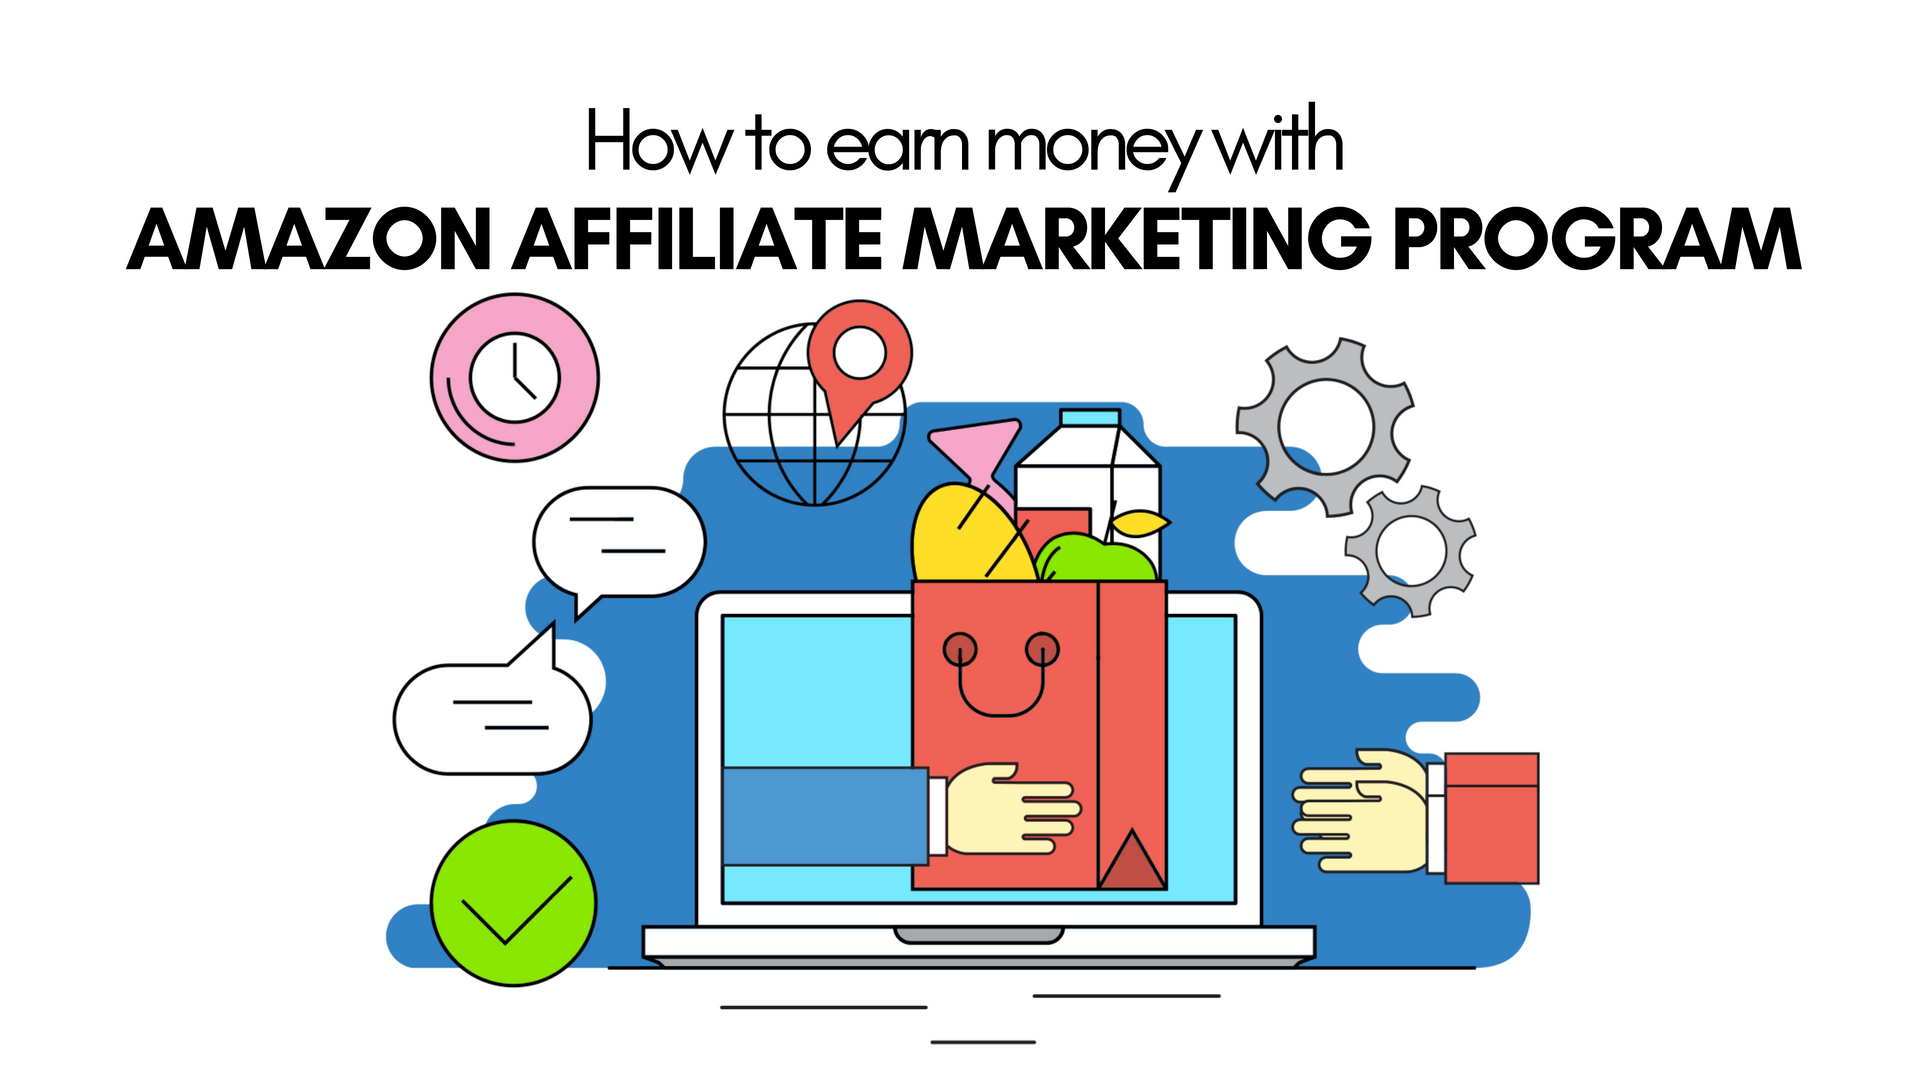 How to Earn Money with Amazon Affiliate Marketing Program